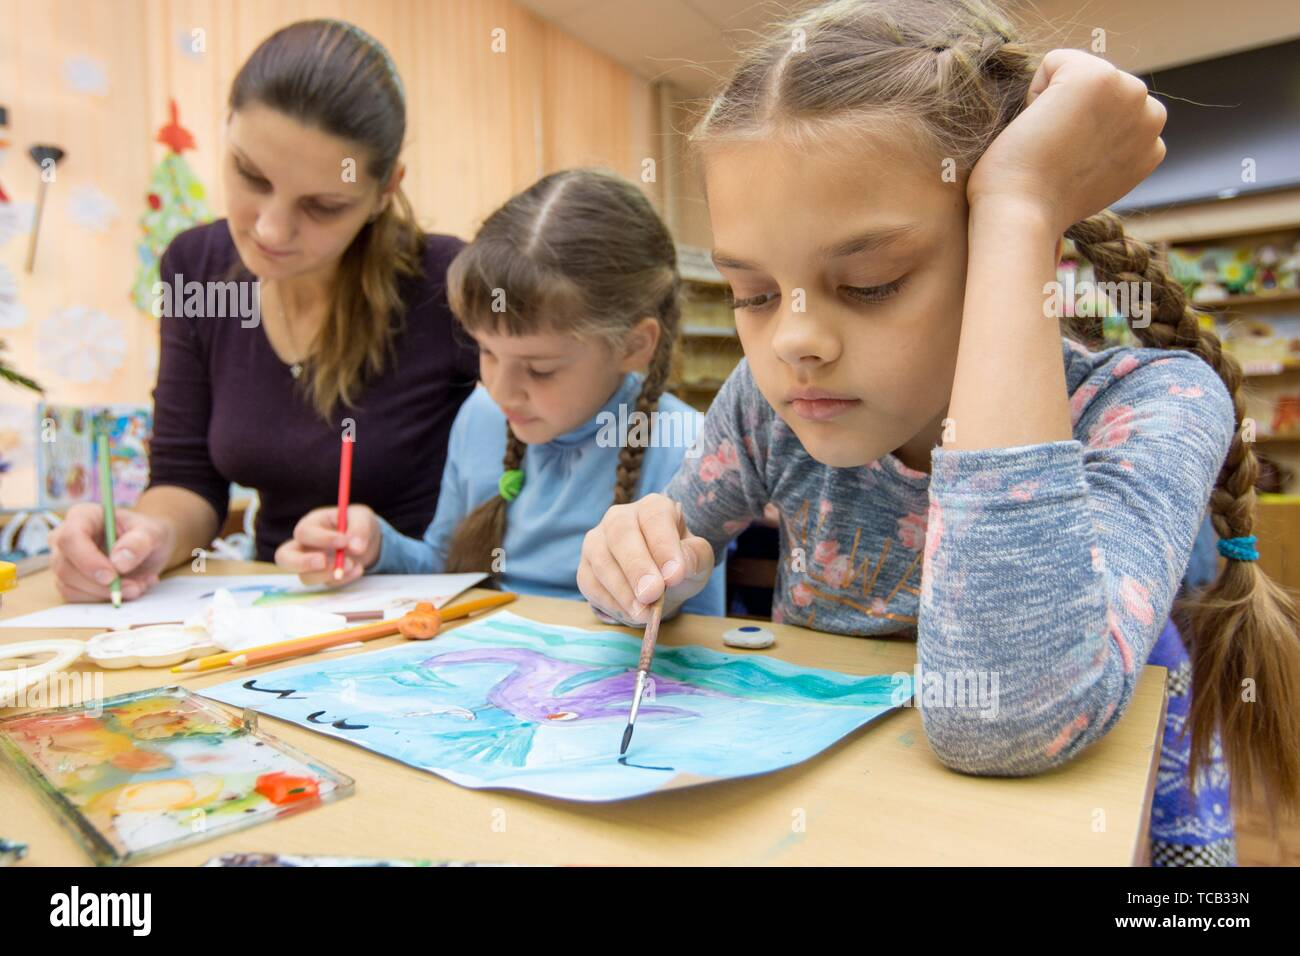 The teacher helps the students in drawing class. - Stock Image